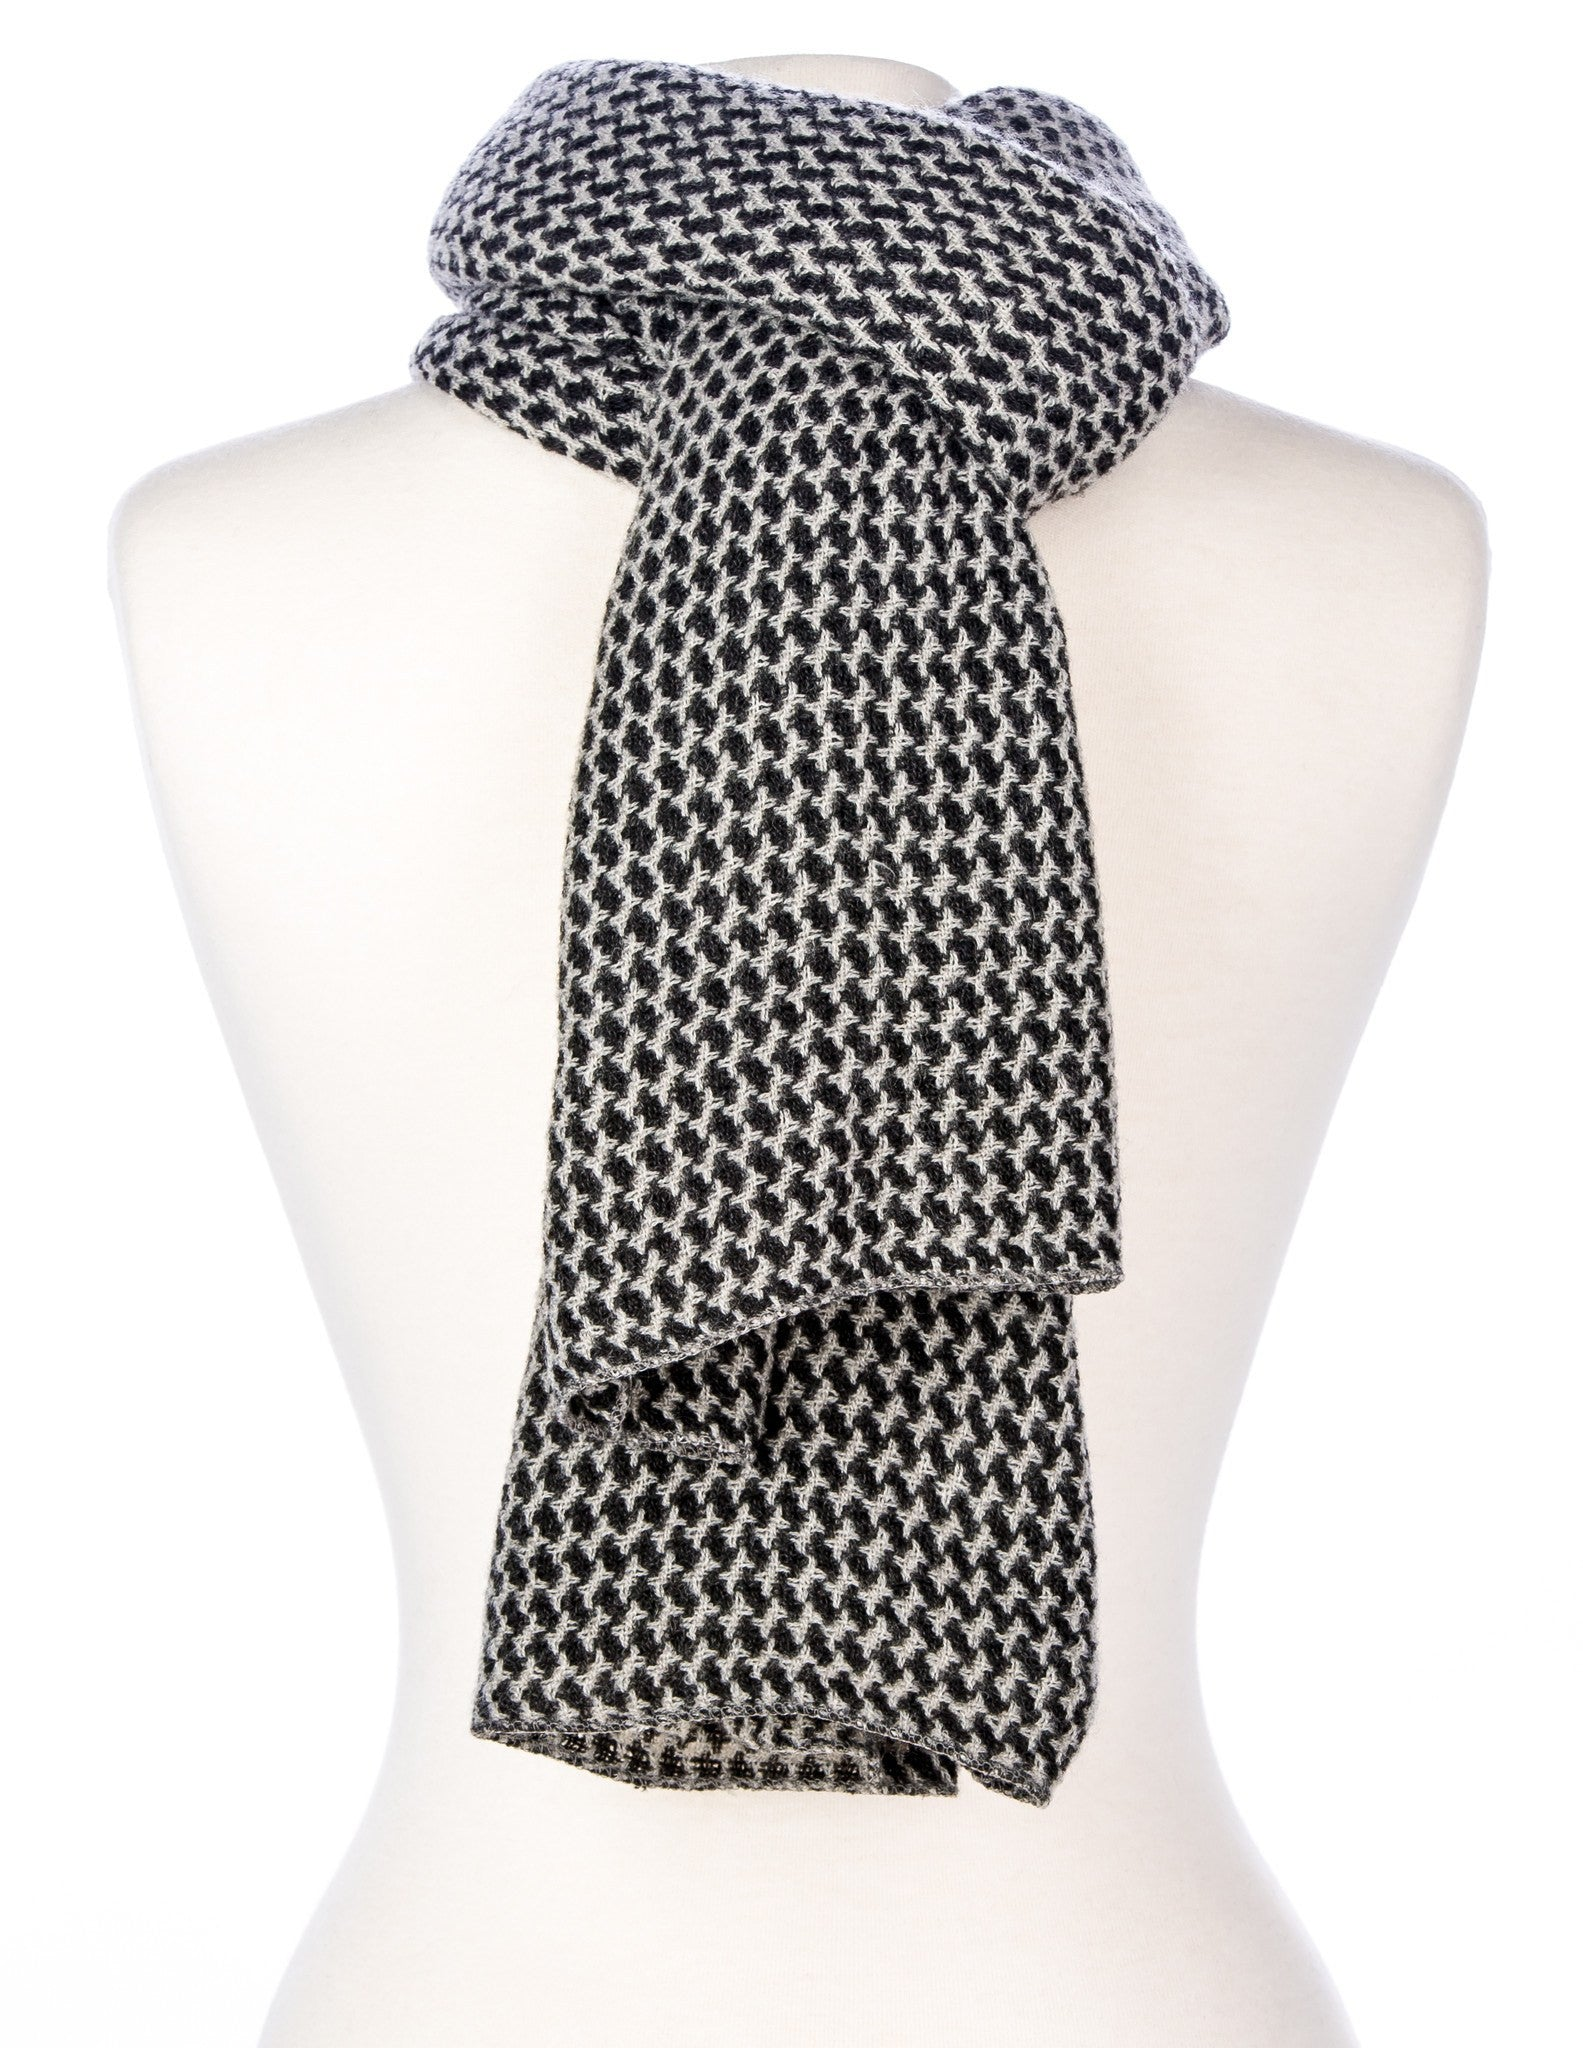 Premium Mens Scarf - Houndstooth Pattern Mufflers for Men